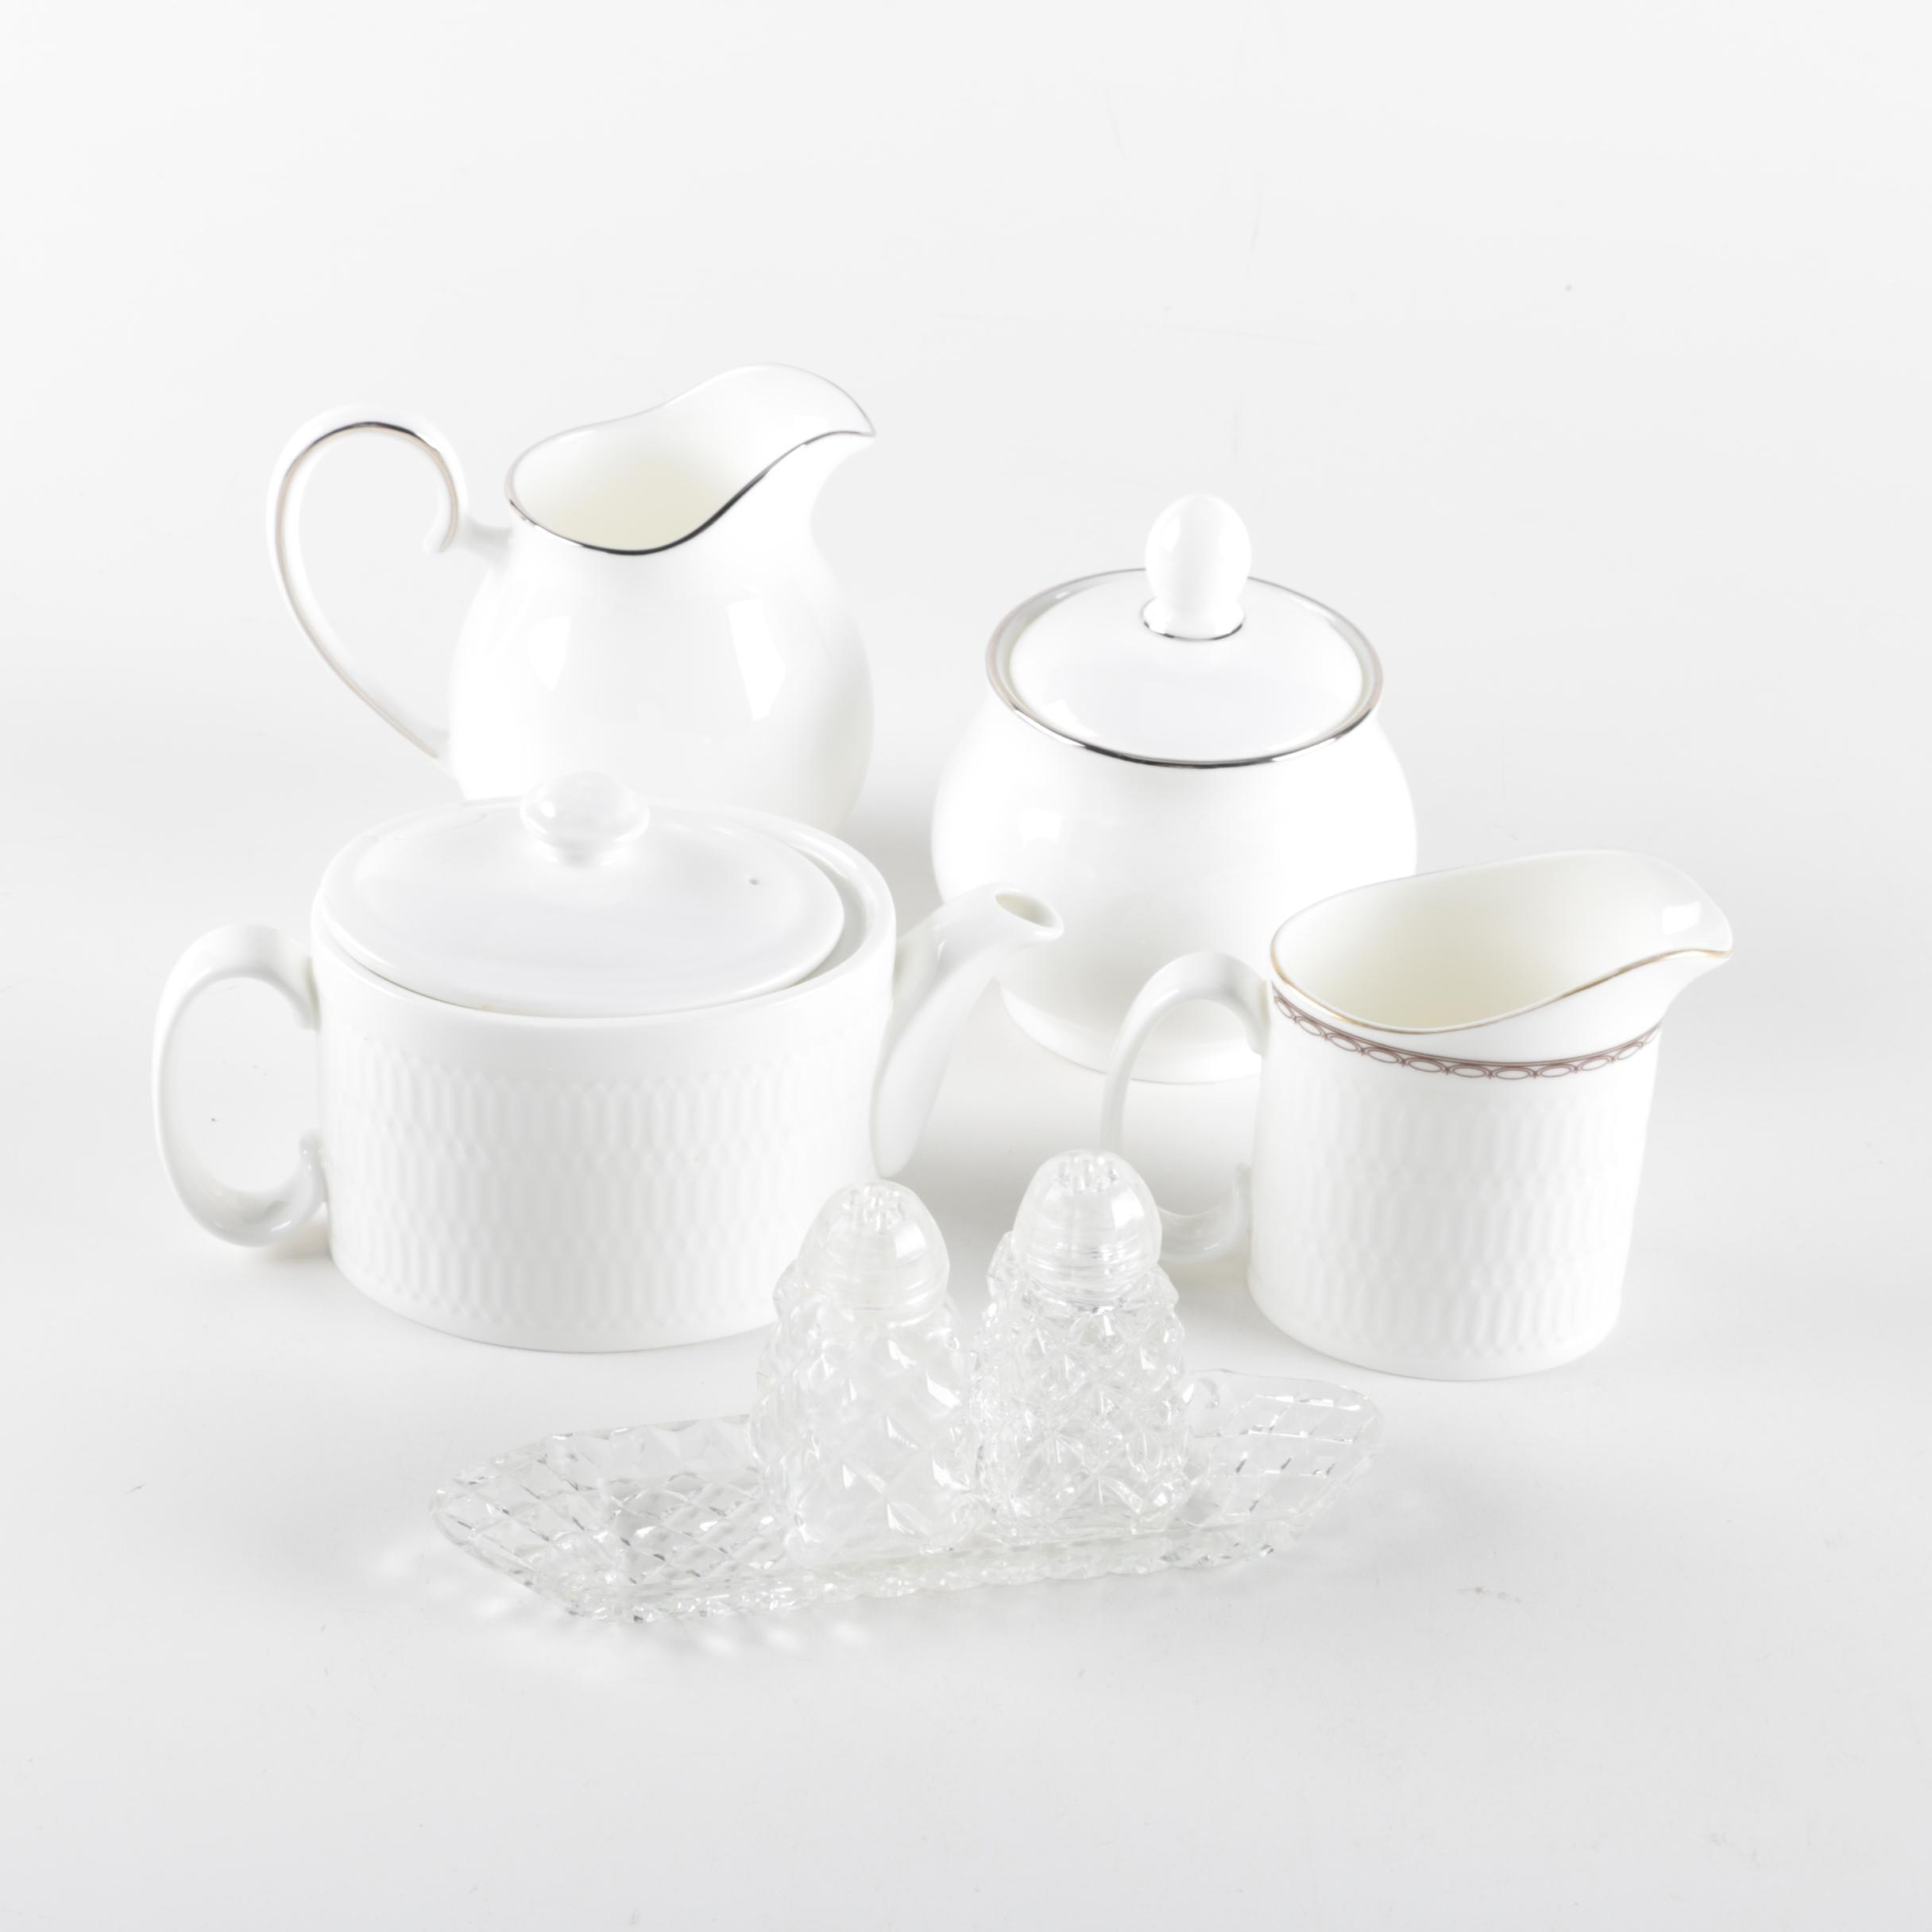 Porcelain and Glass Serveware